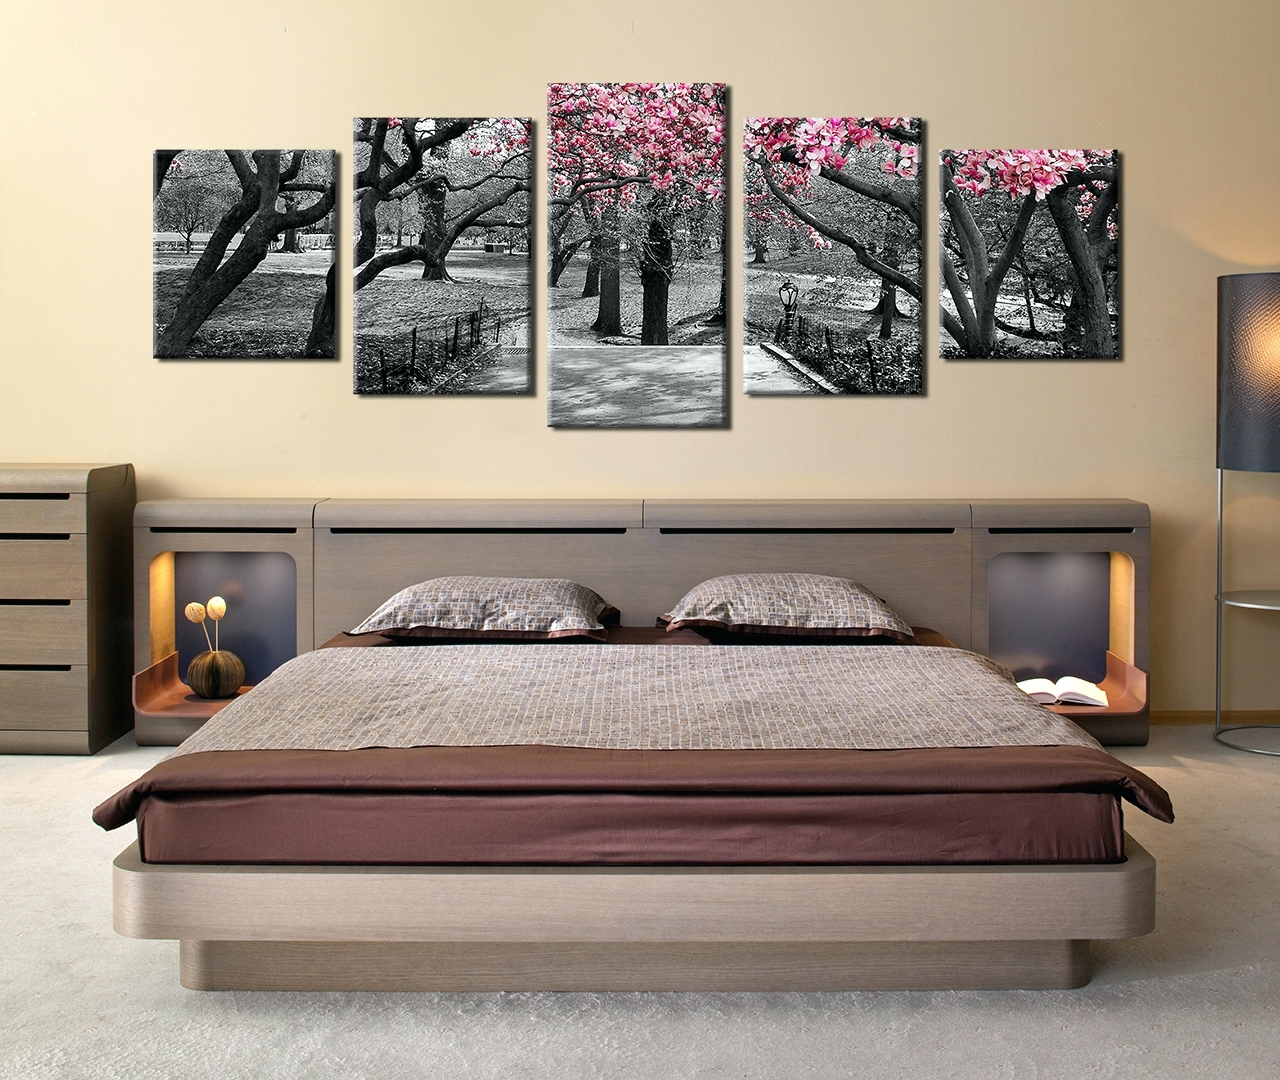 Preferred Wall Art For Bedroom Pertaining To Wall Arts ~ Living Room Wall Art Canvas 5 Piece Huge Canvas Art (View 6 of 15)